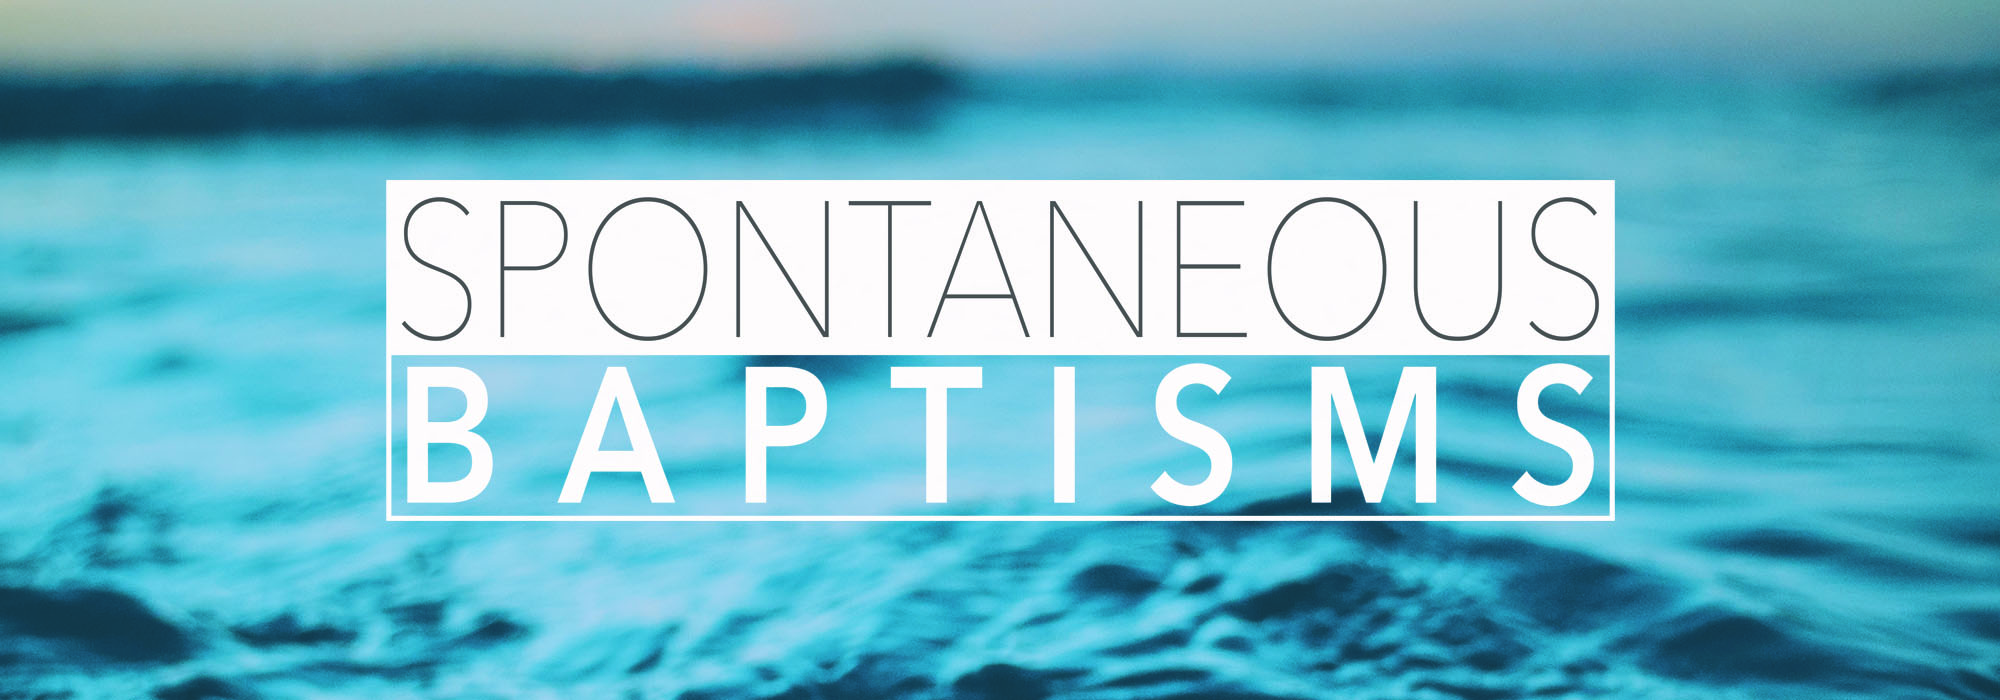 Spontaneous Baptisms